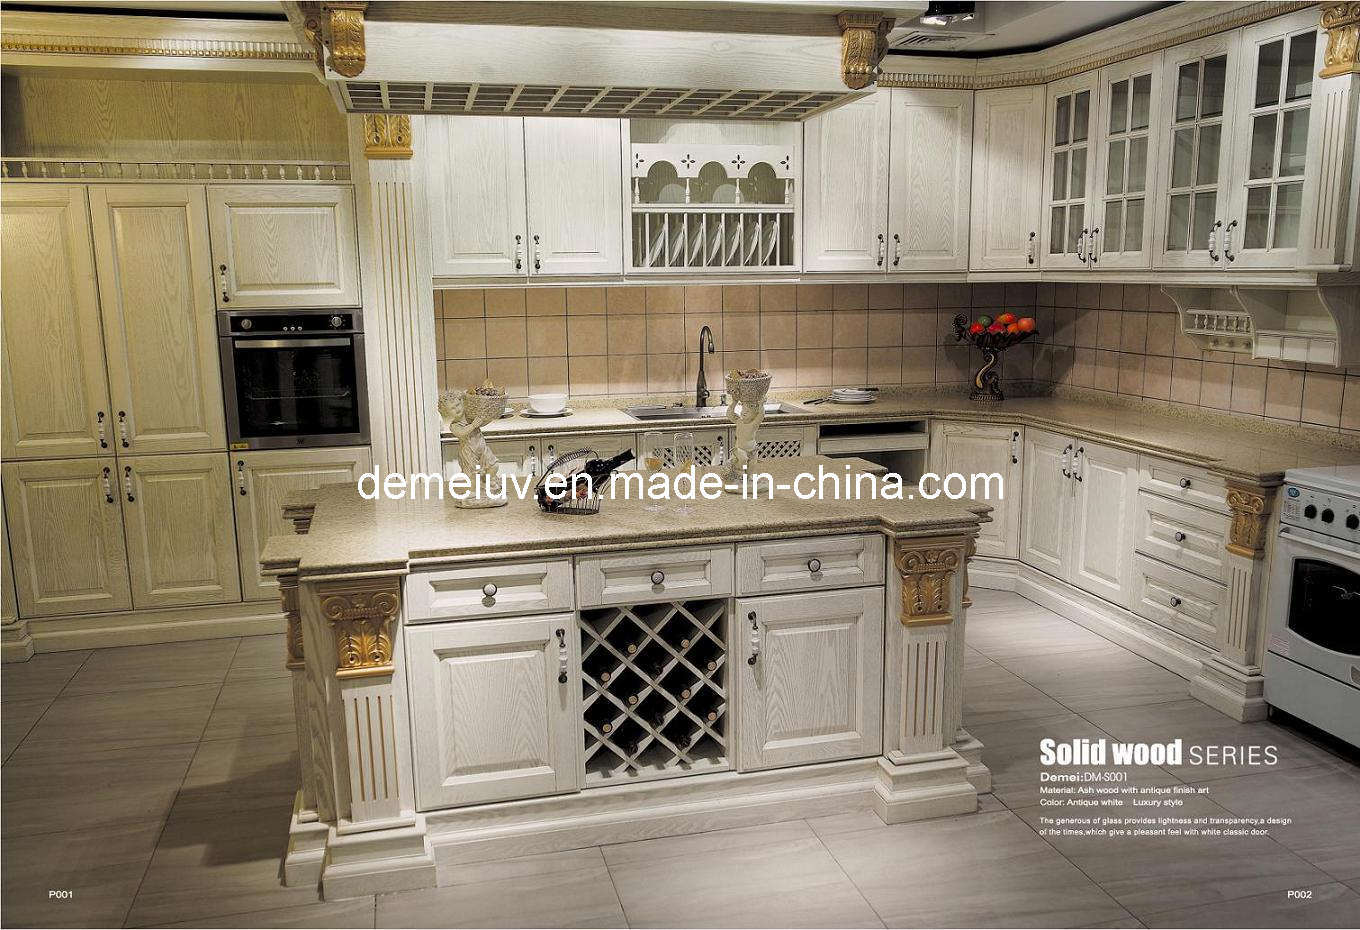 Antique European Kitchen Cabinets China Kitchen Furniture Kitchen Cabinet Antique Style